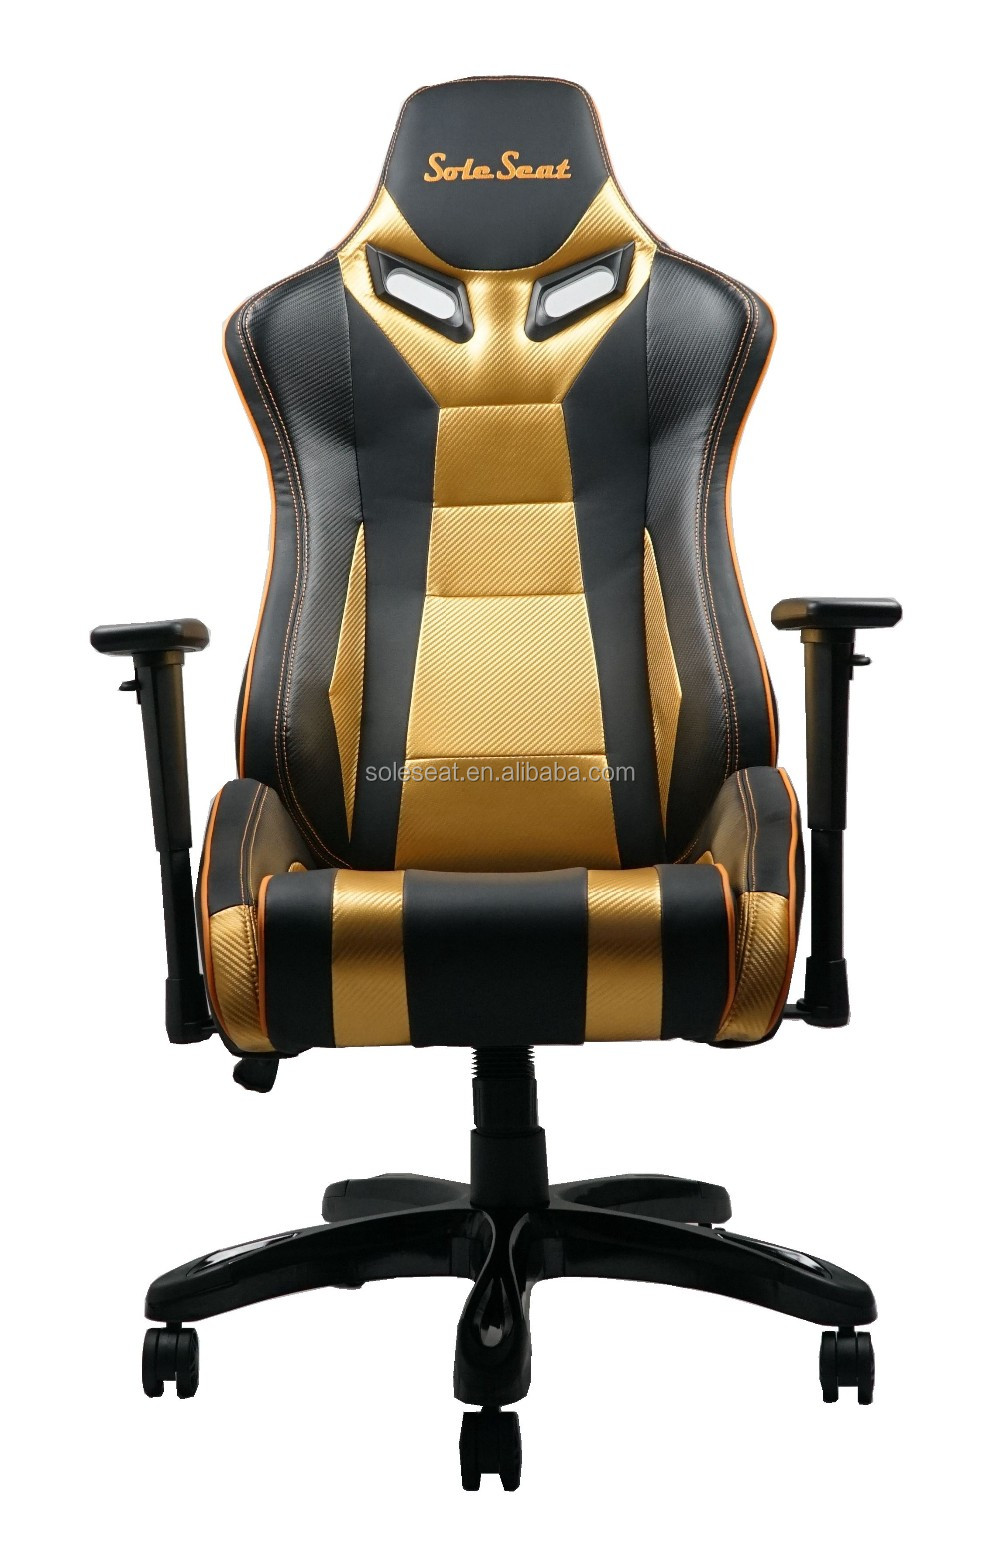 ET 2017 Racing style office chair gamer chair gaming chair